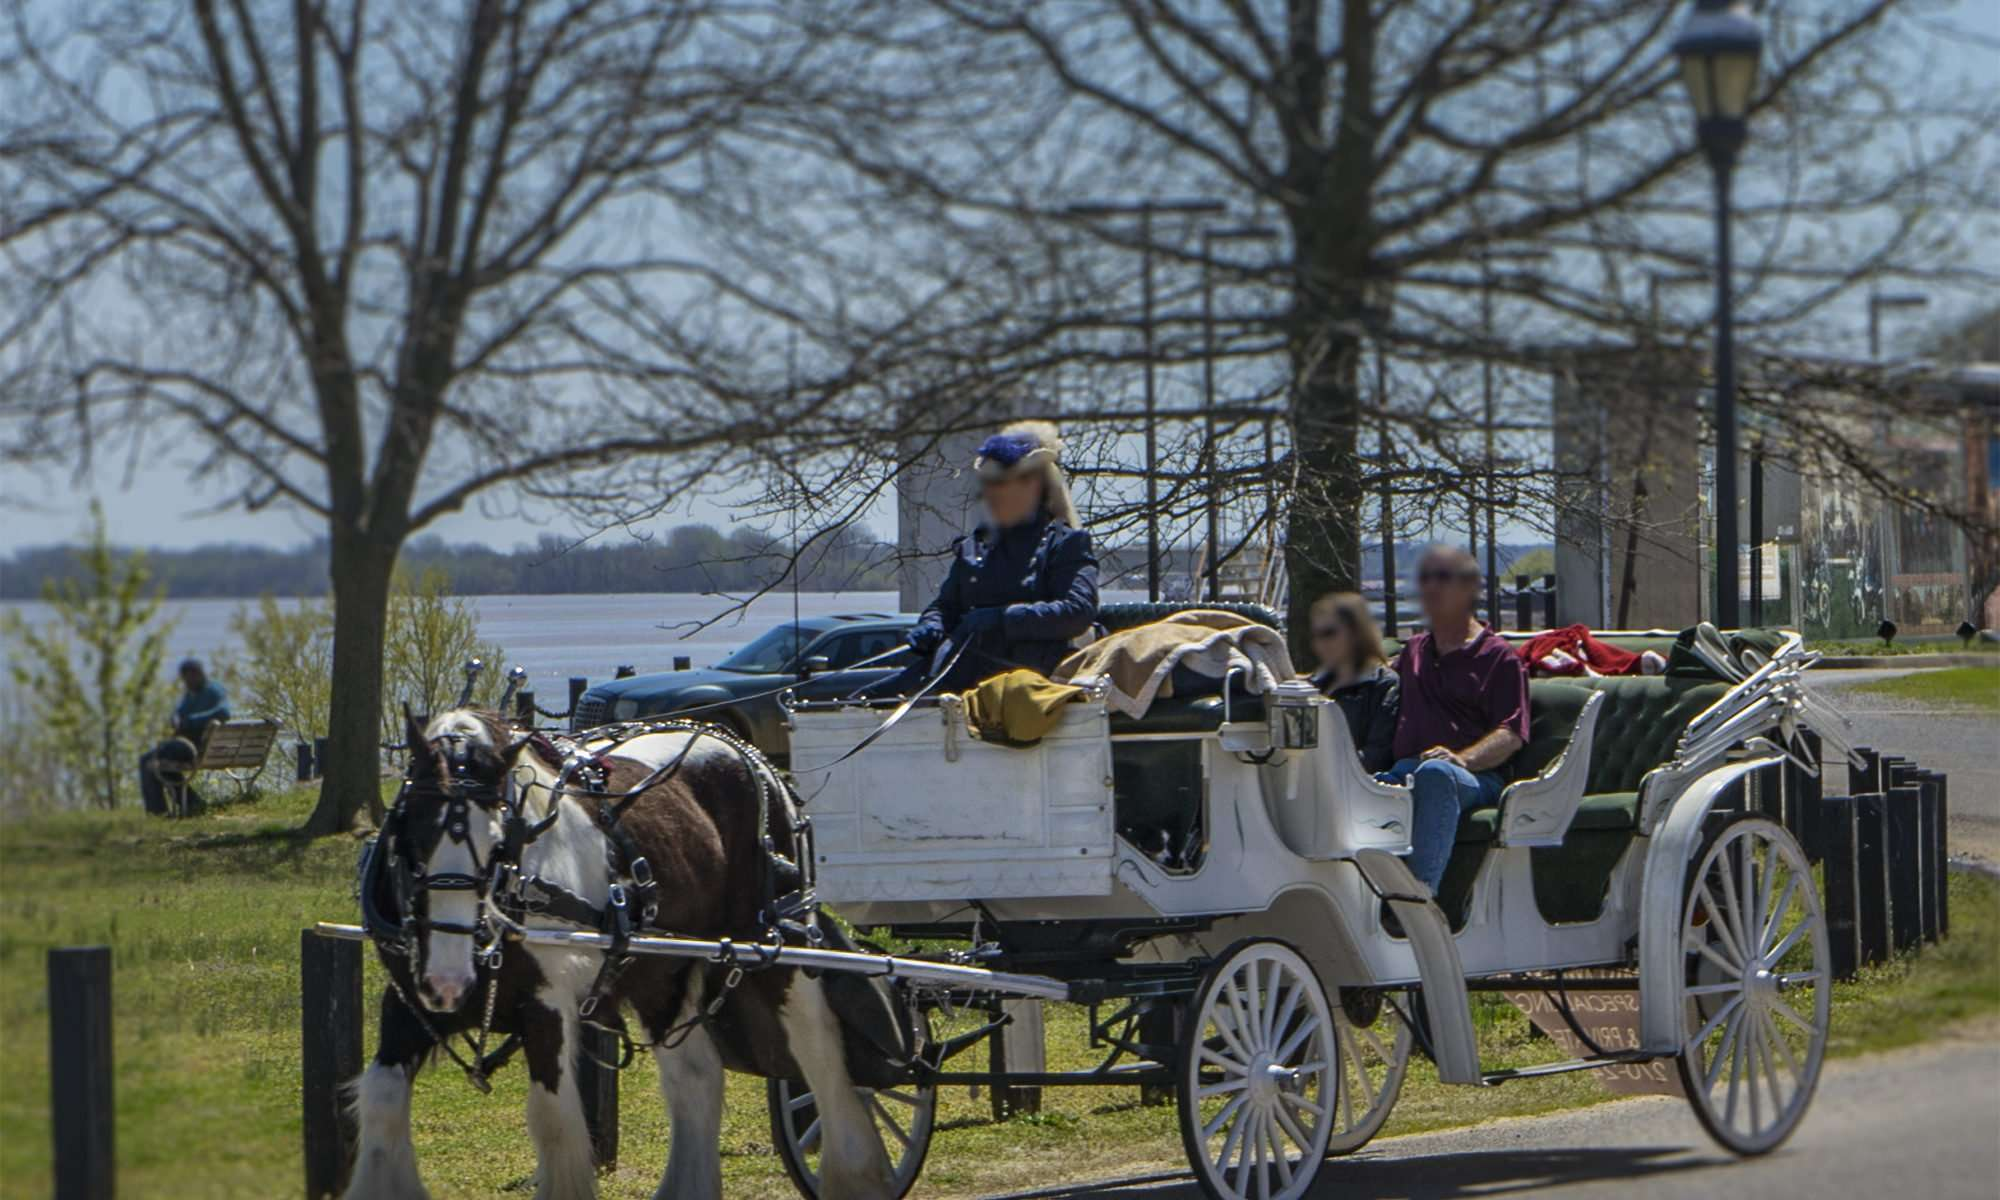 April 8, 2017 - Horse and buggy ride with tour gide along the Ohio River in Paducah(faces blurred for privacy)/photonews247.com